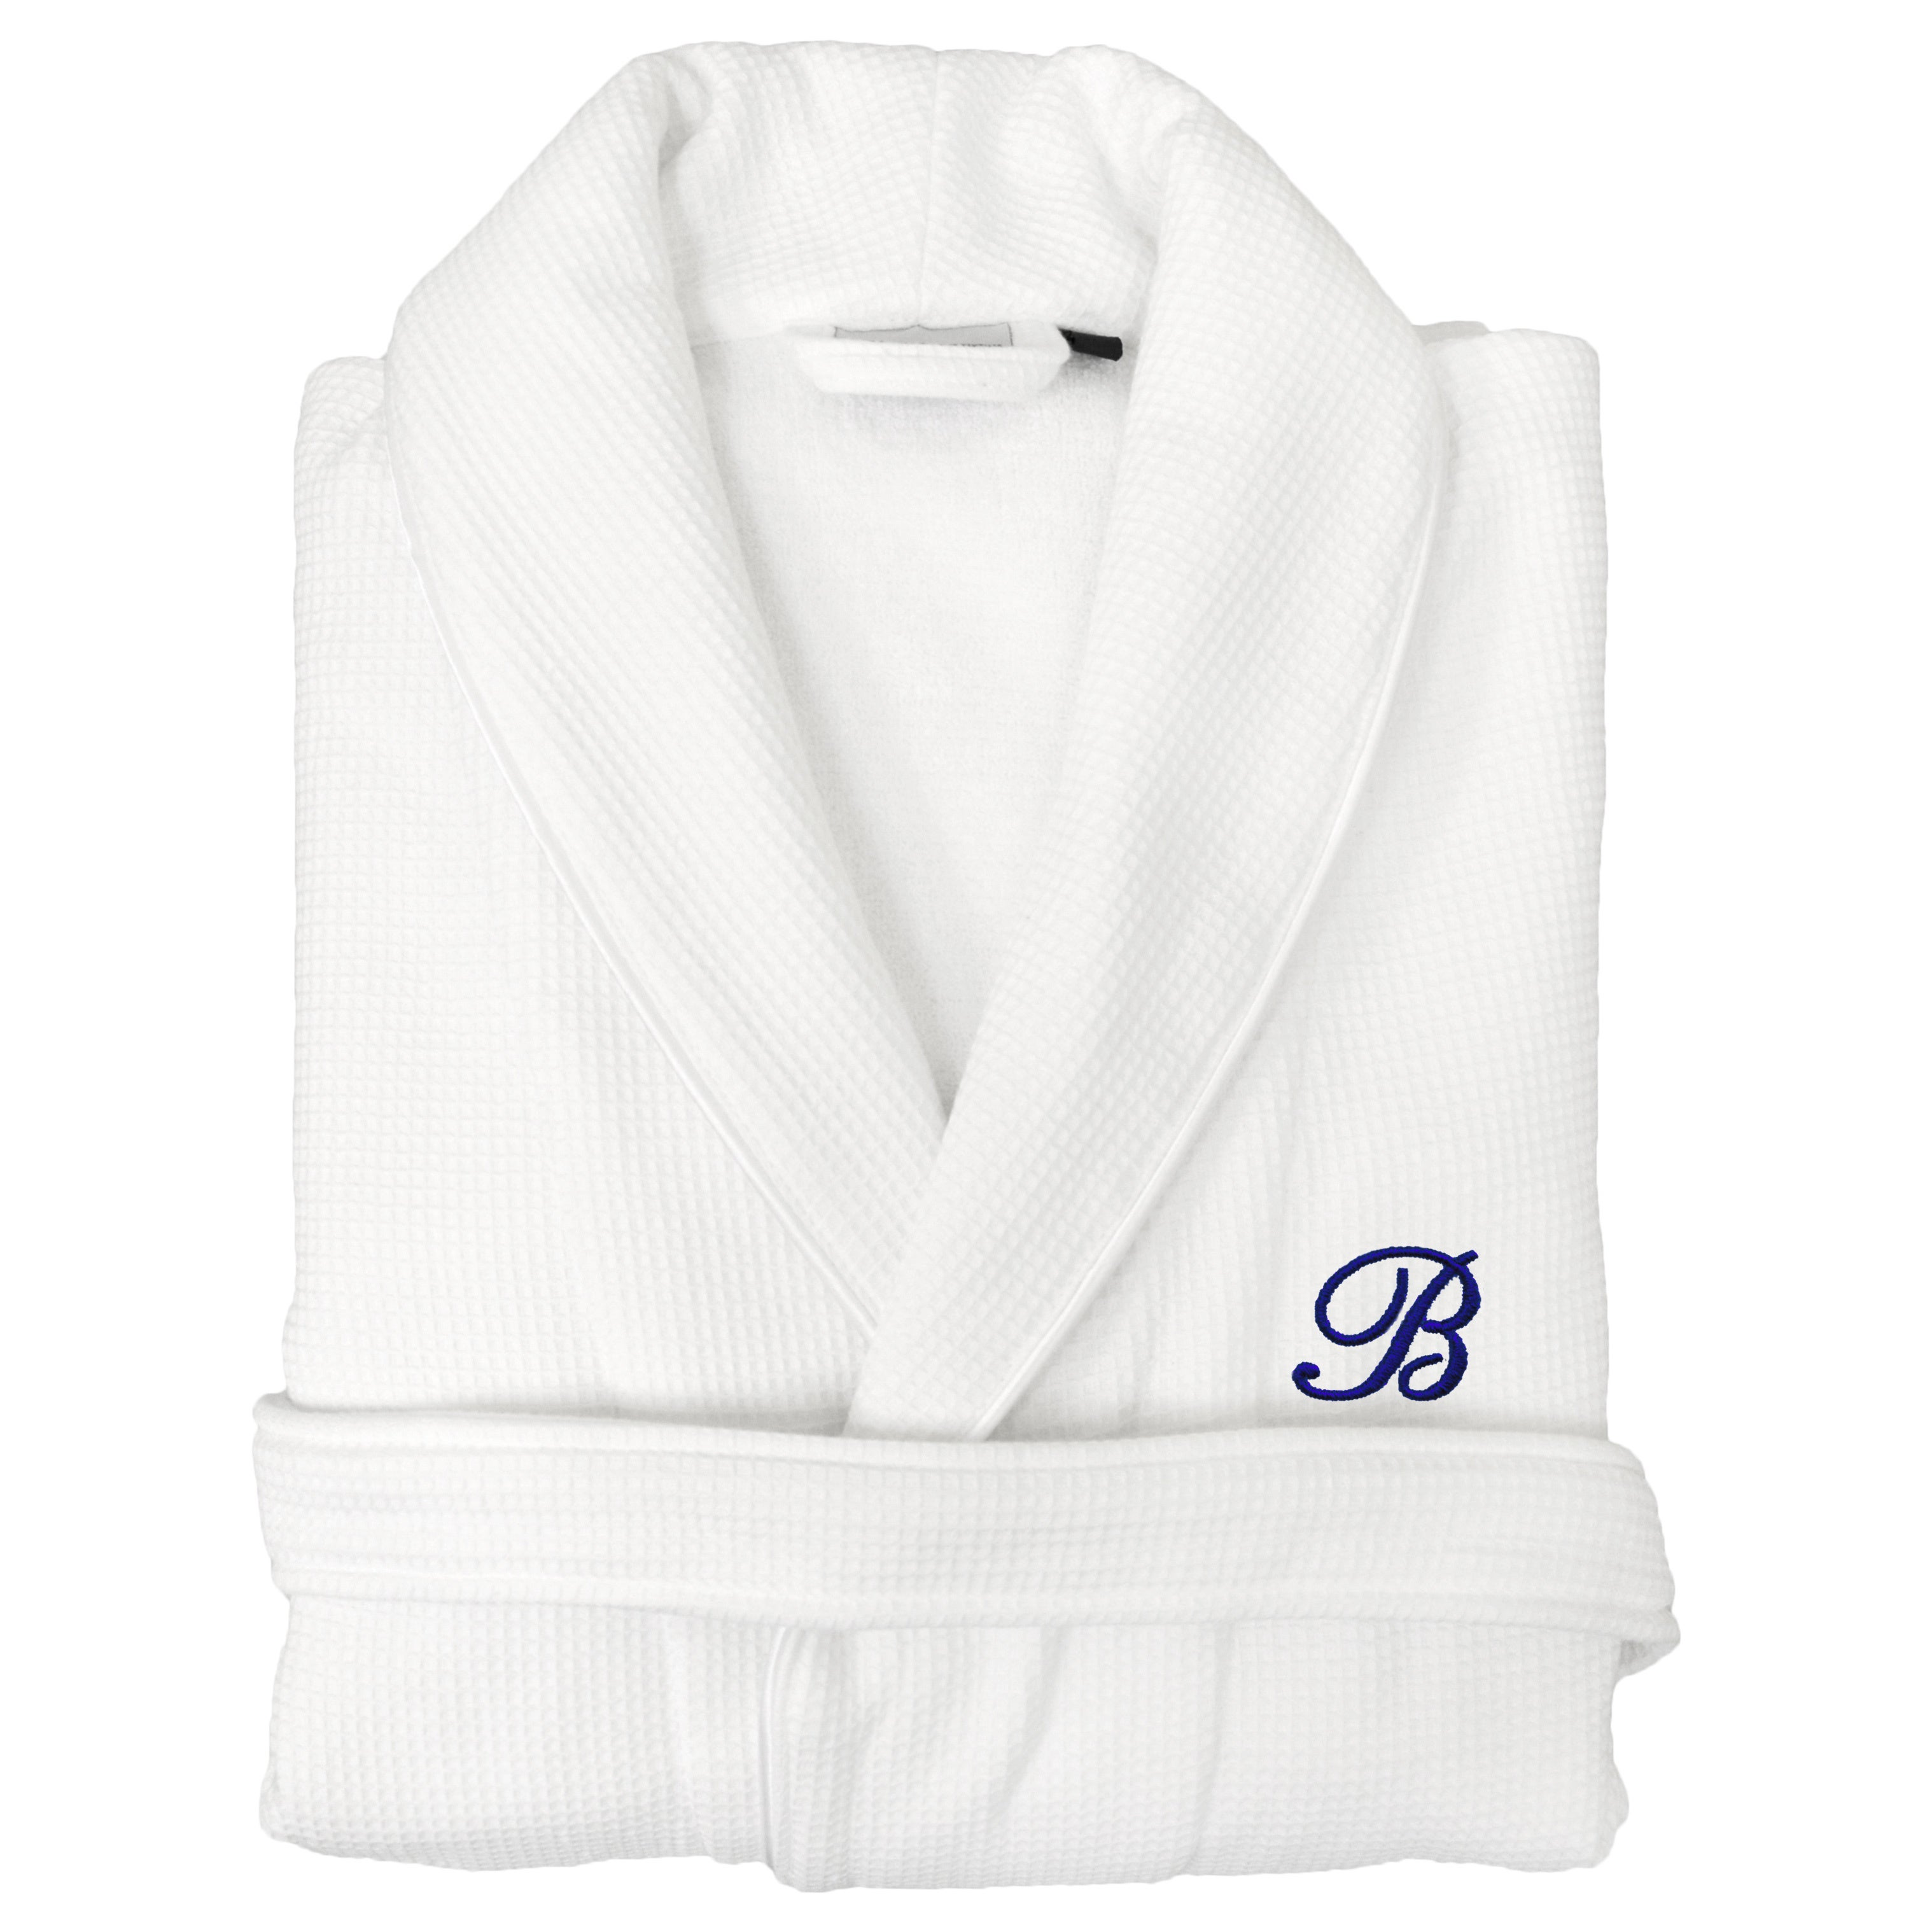 7d3dec878a Shop Authentic Hotel and Spa Unisex Navy Blue Monogrammed Turkish Cotton  Waffle Weave Terry Bath Robe - On Sale - Free Shipping Today - Overstock -  10584622